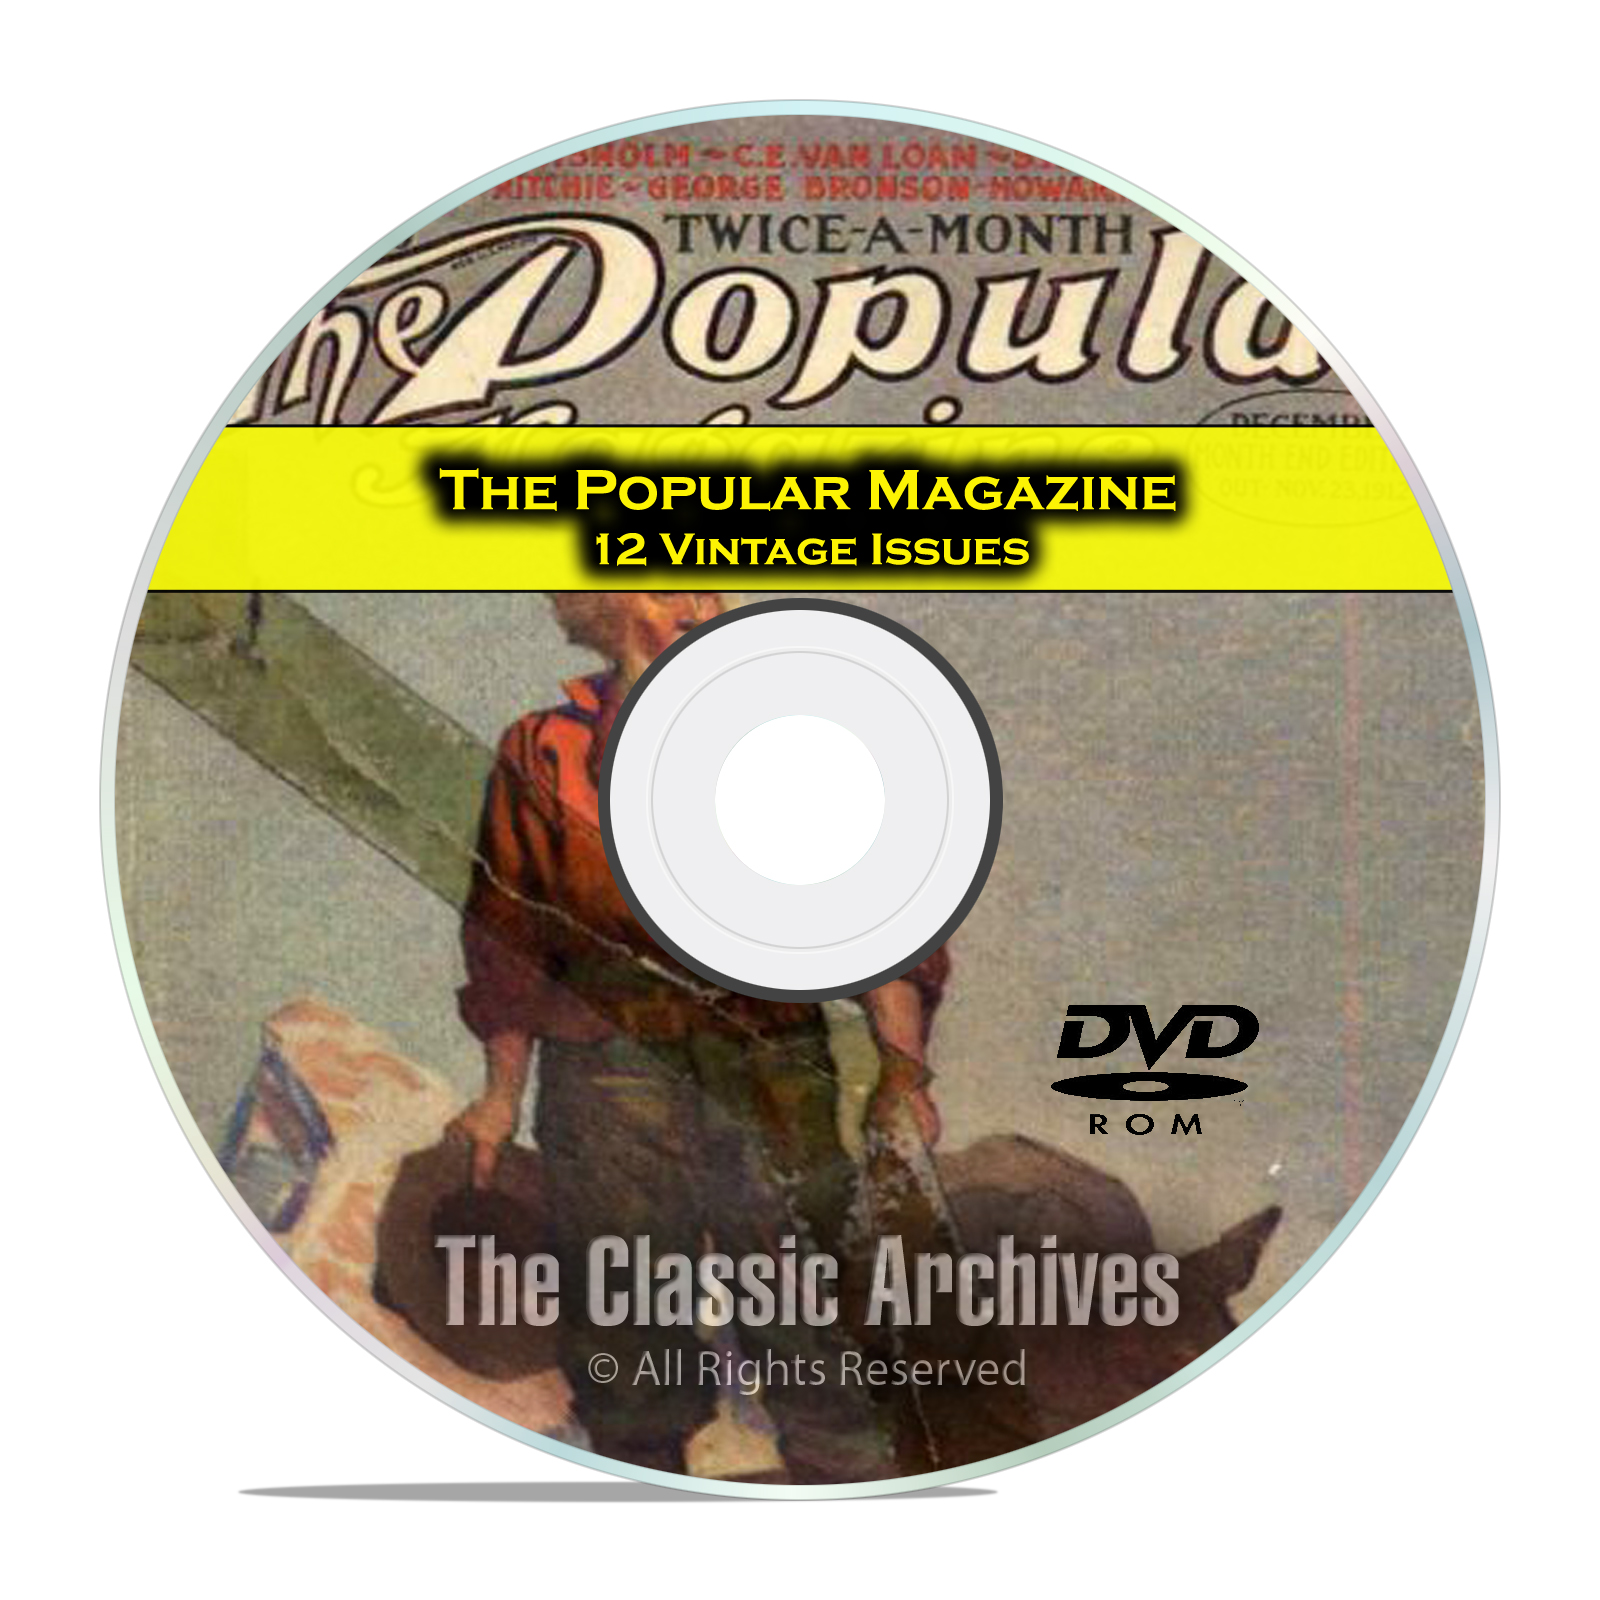 The Popular Magazine, 12 Vintage issues 1908-1918, Vintage Mens Stories DVD